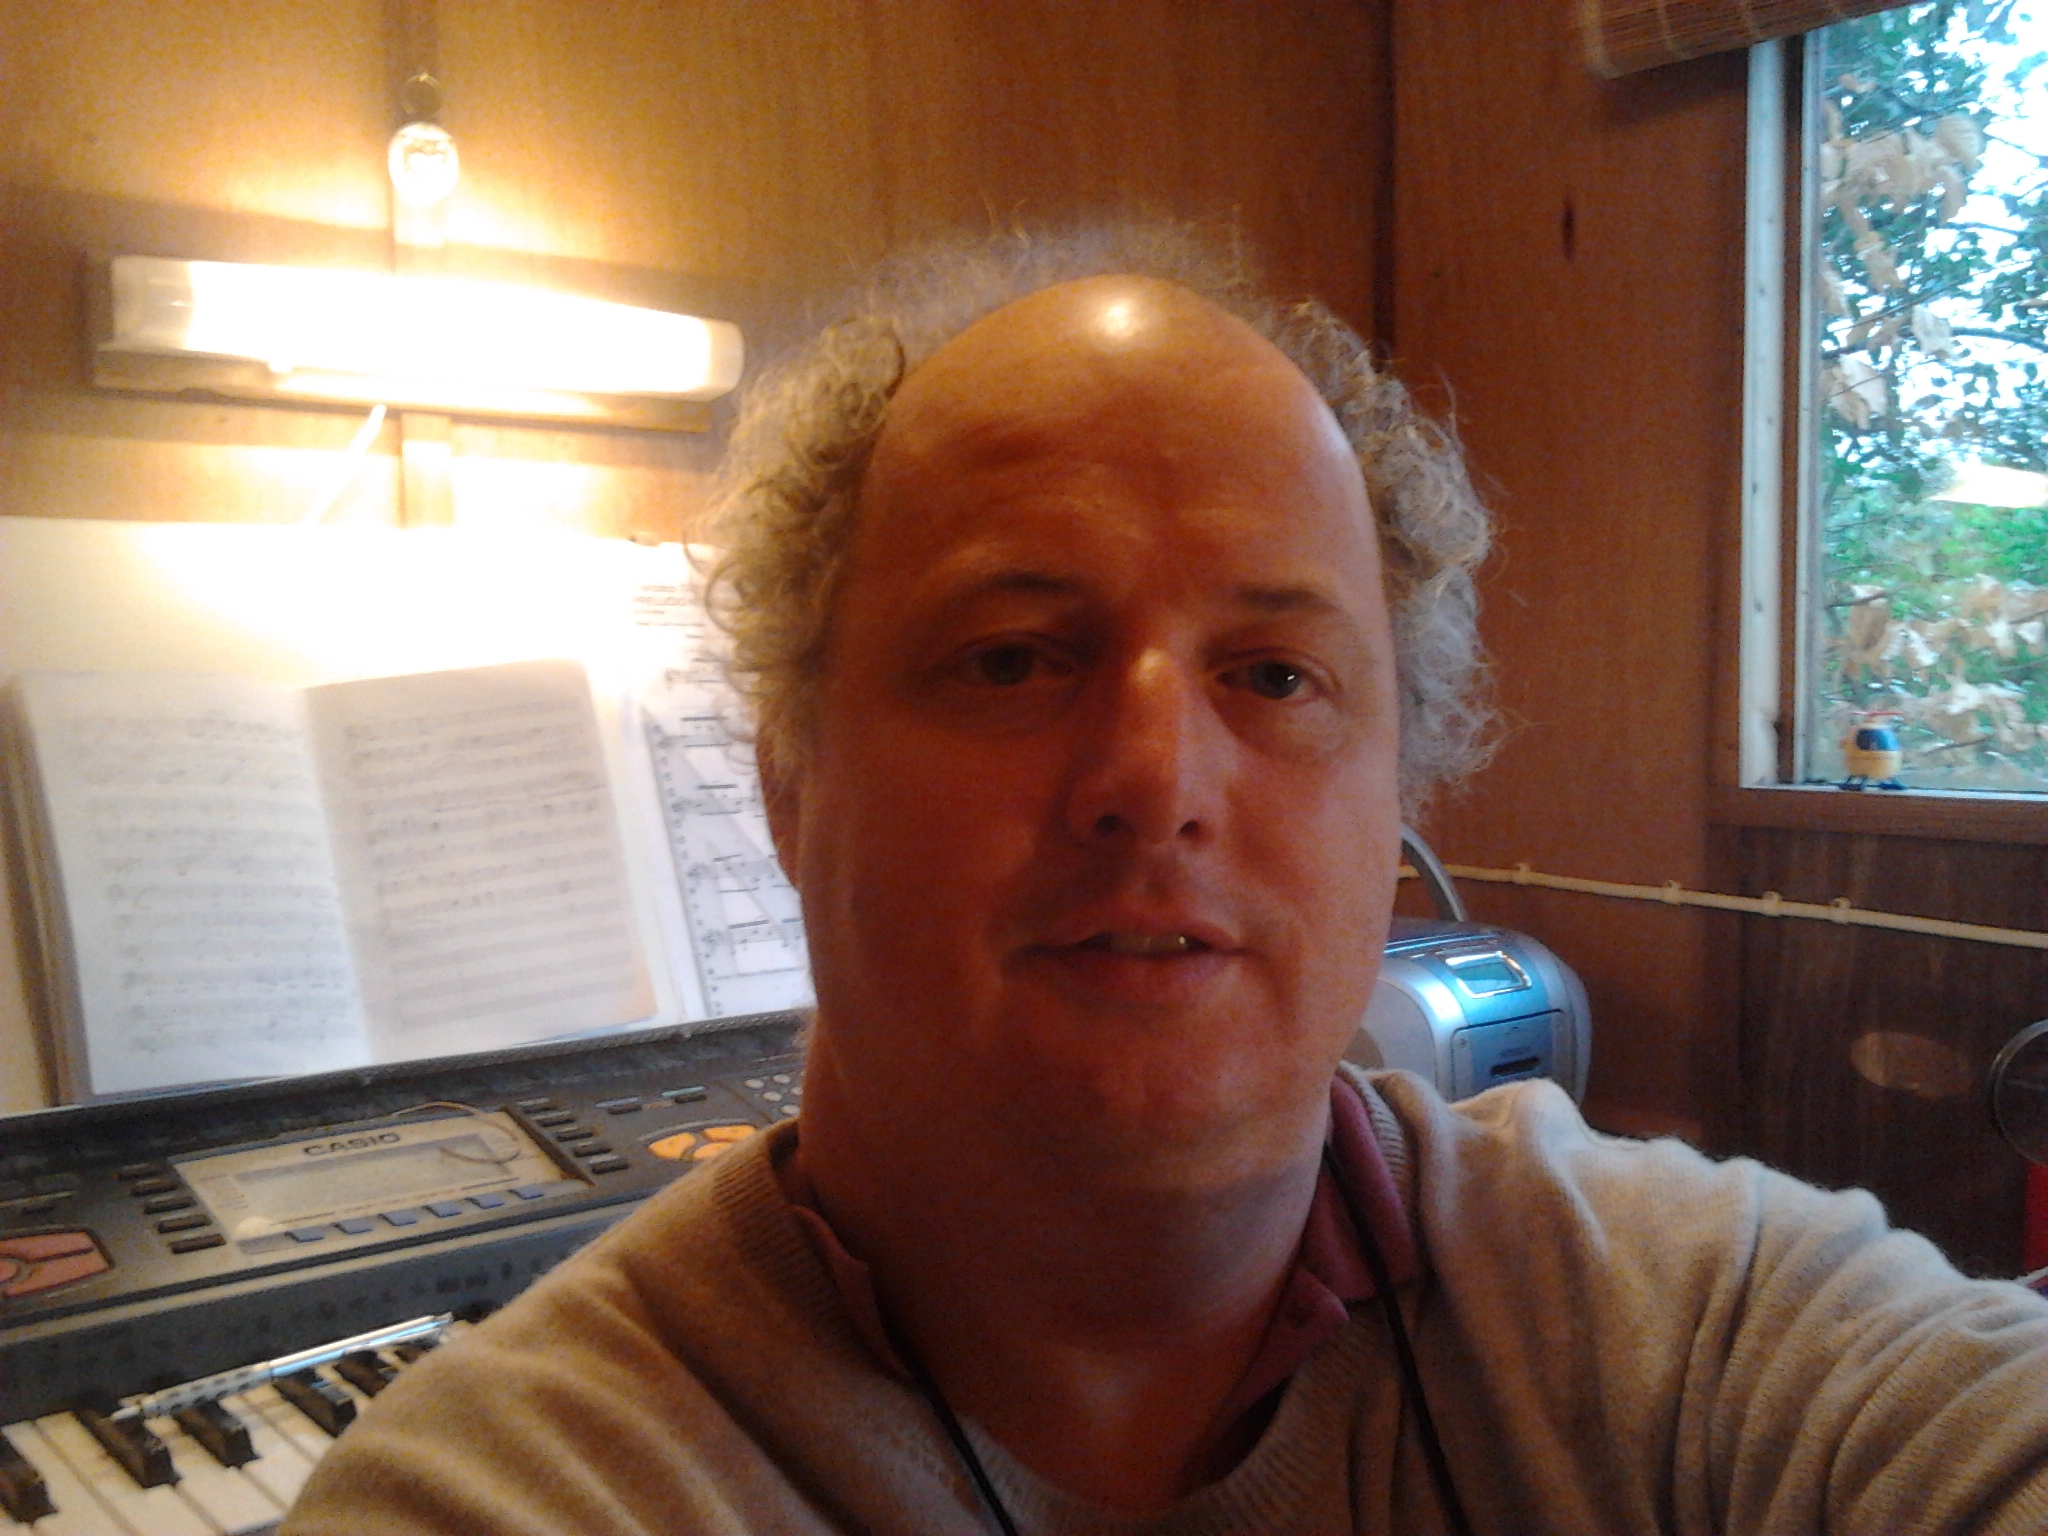 Working in my composing shed